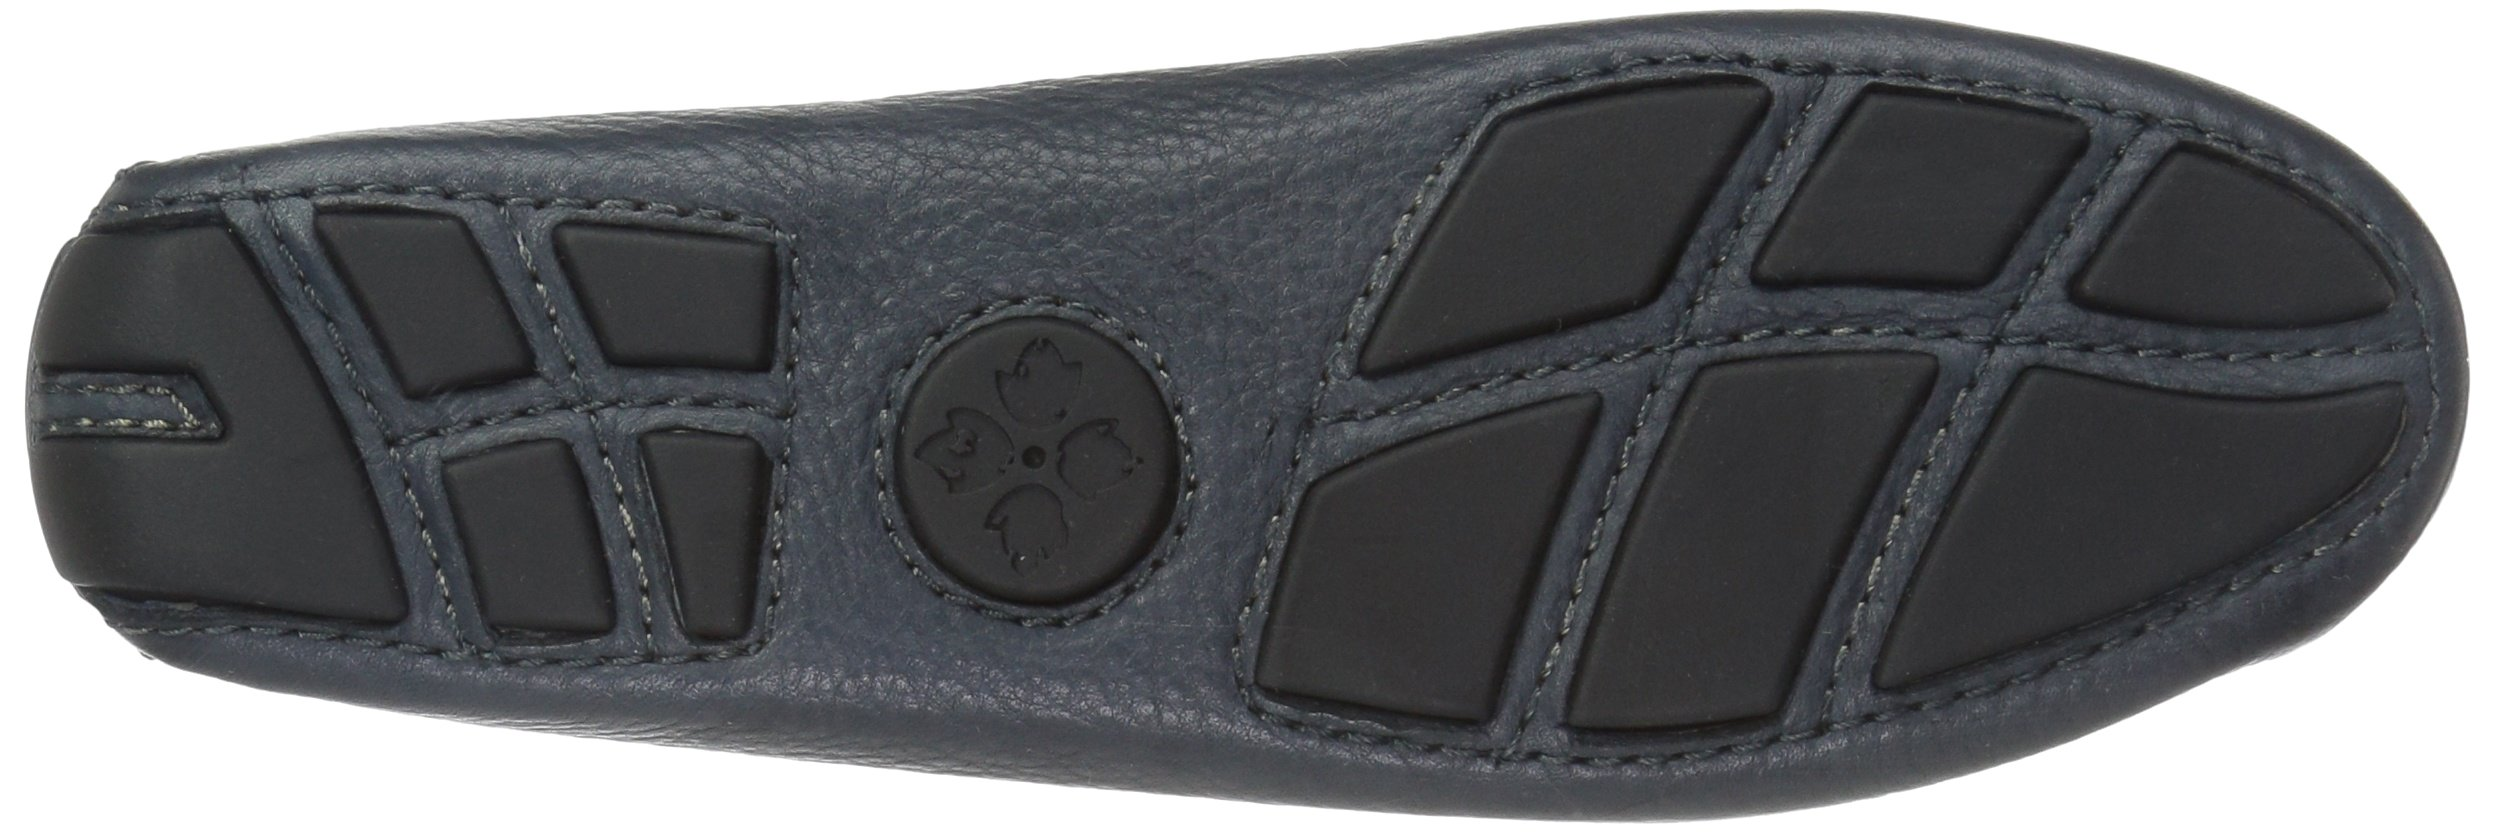 Patricia Nash Women's Domenica Driving Style Loafer, Oxford Blue, 37 B US by Patricia Nash (Image #3)